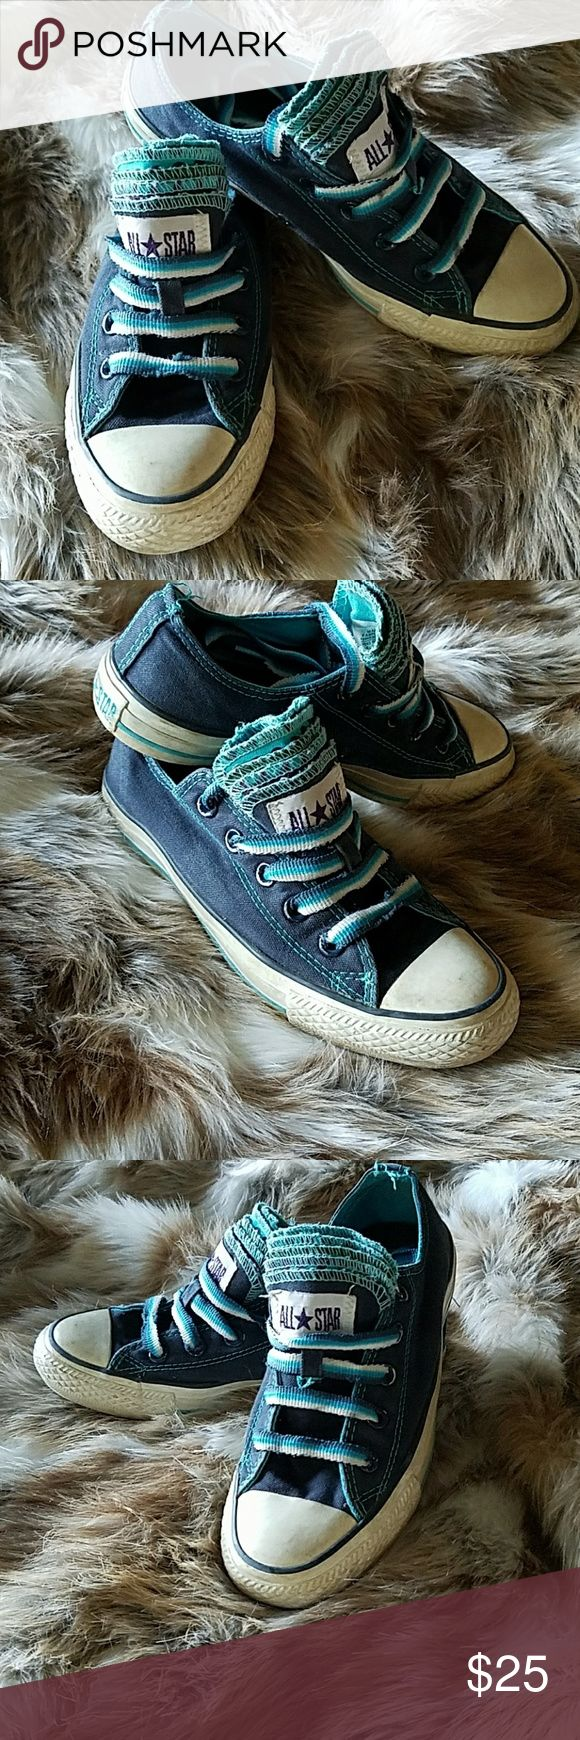 CONVERSE BLUE 5 TONGUE ALLSTARS CONVERSE BLUE 5 TONGUE ALLSTARS. FUNKY FLIRTY CUTE! TOMBOY MODE! ADORABLE WITH BOYFRIEND JEANS AND A VINTAGE ROCKER TEE! GOOD PRELOVED CONDITION.SMOKE FREE. LOTS OF LIFE LEFT! Converse Shoes